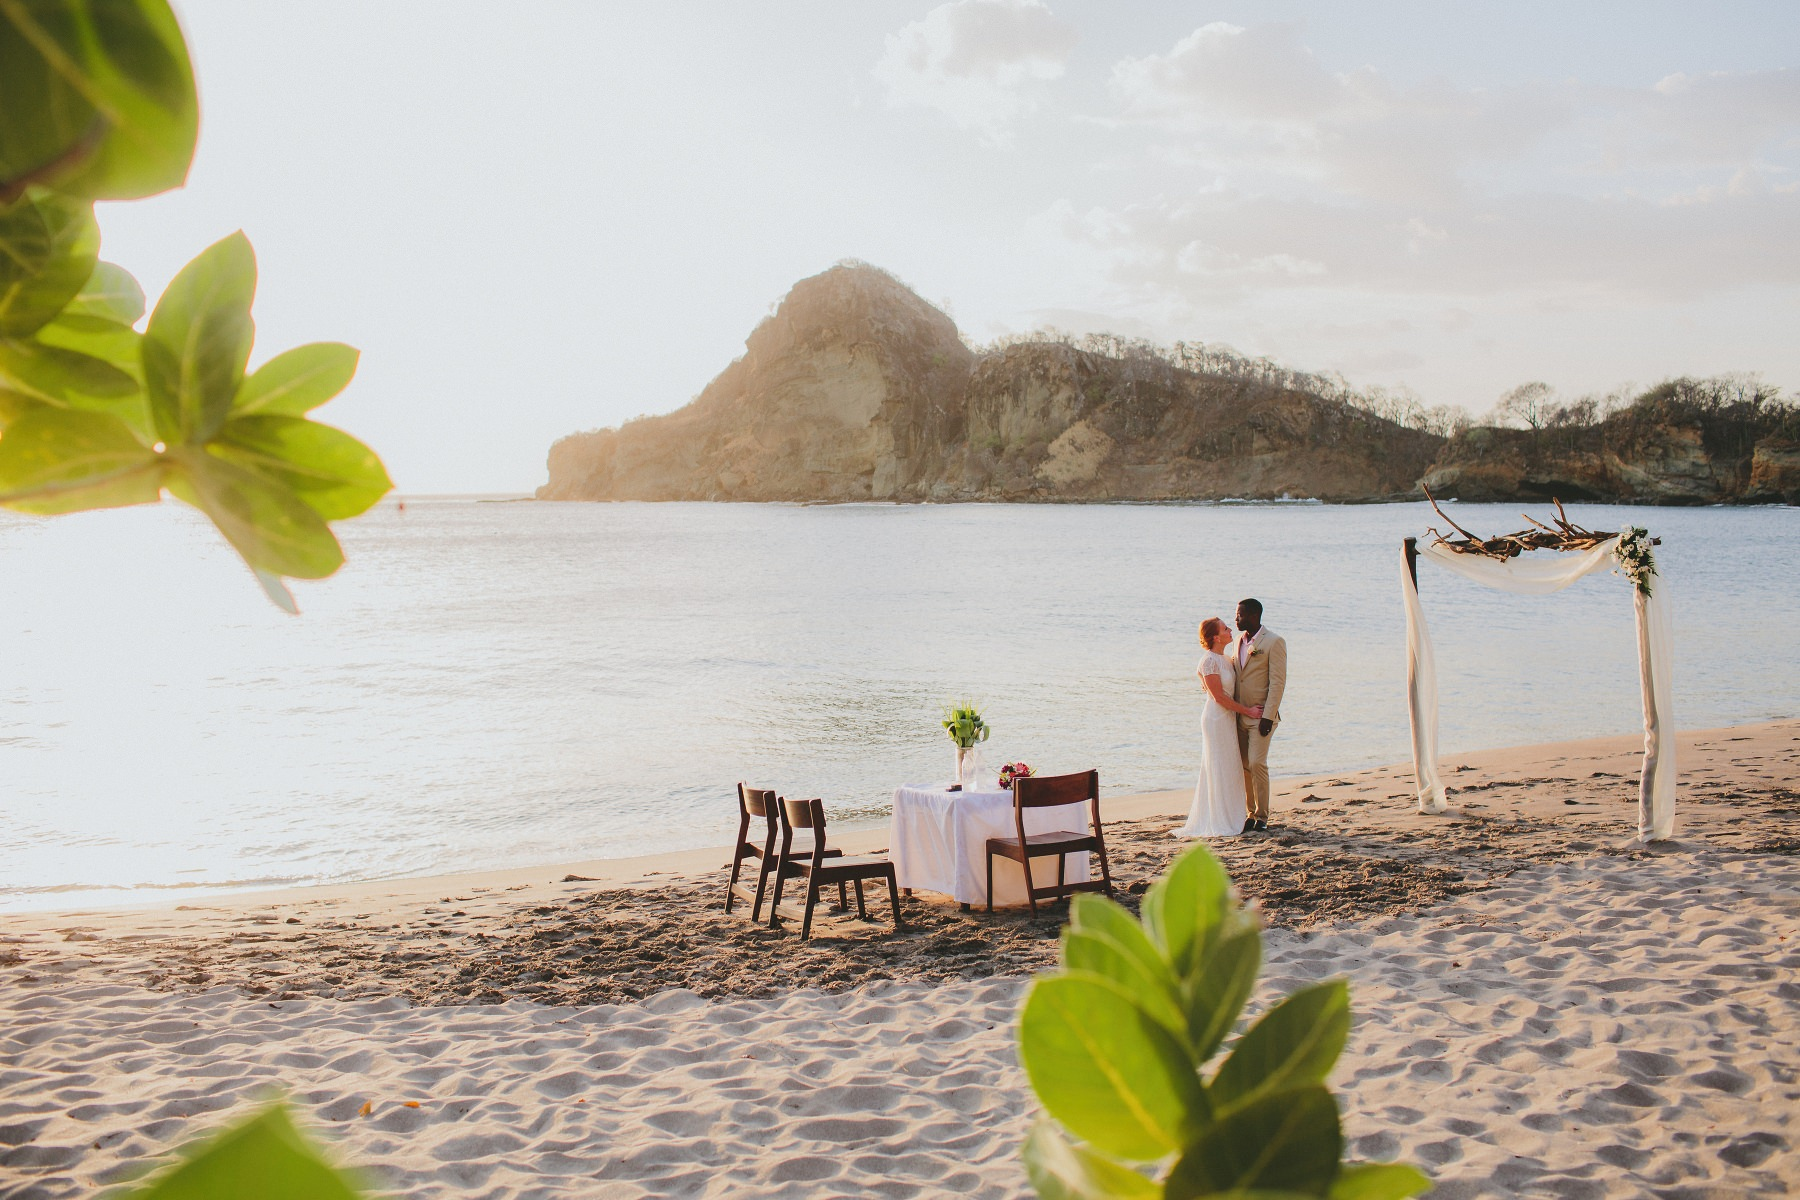 Elopement wedding photography at the beach in Nicaragua. Bride and groom embracing.